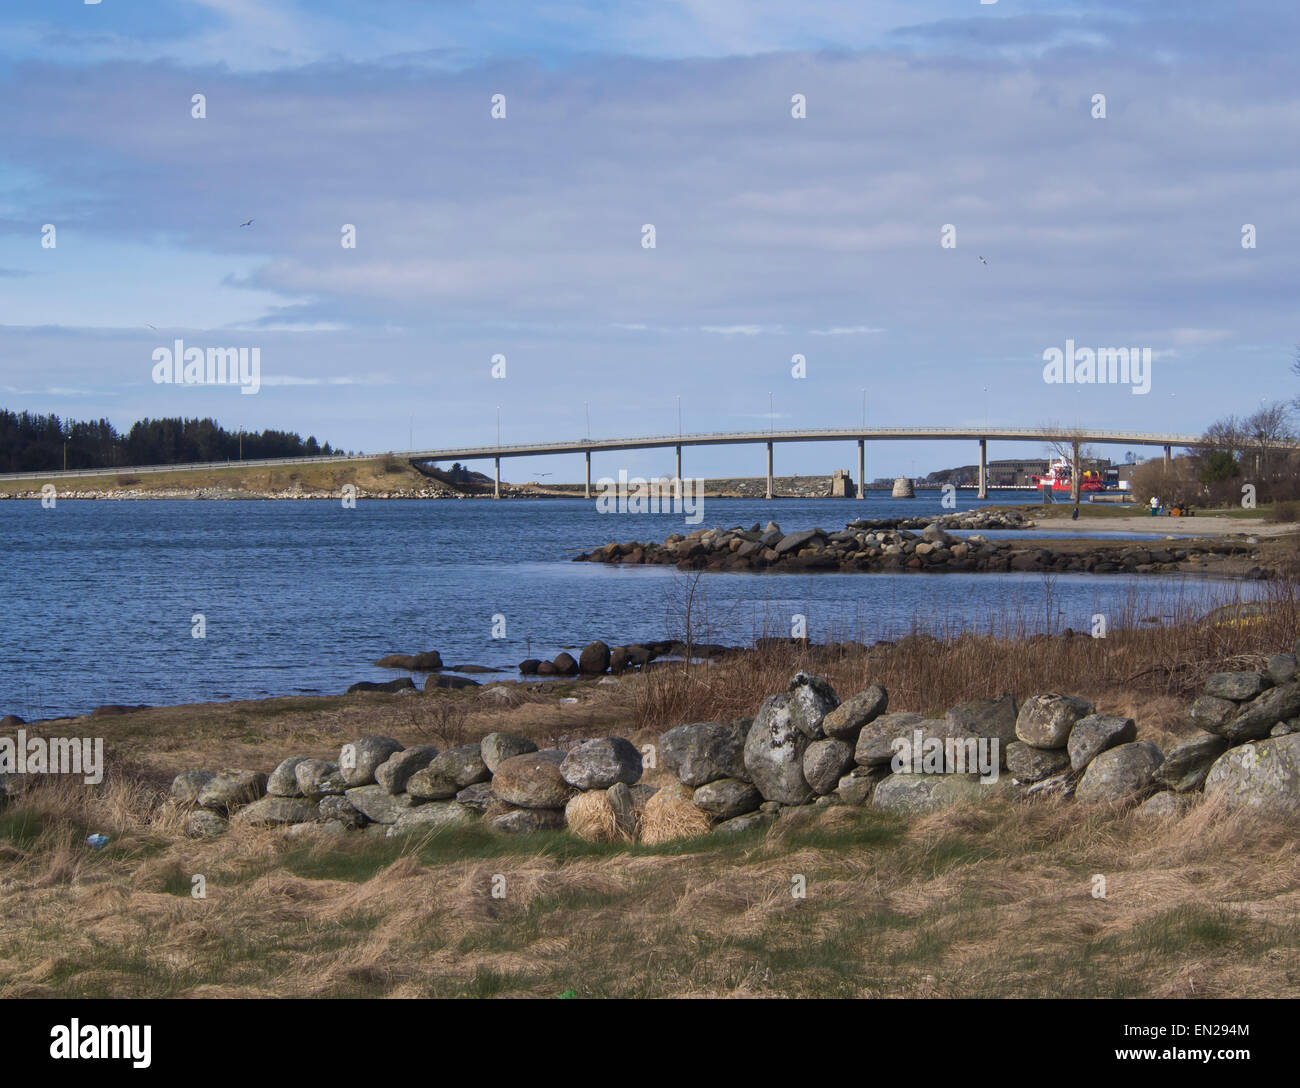 The Hafrsfjord bridge in Stavanger Norway, a historical site where Norway became one country in AD 872 - Stock Image